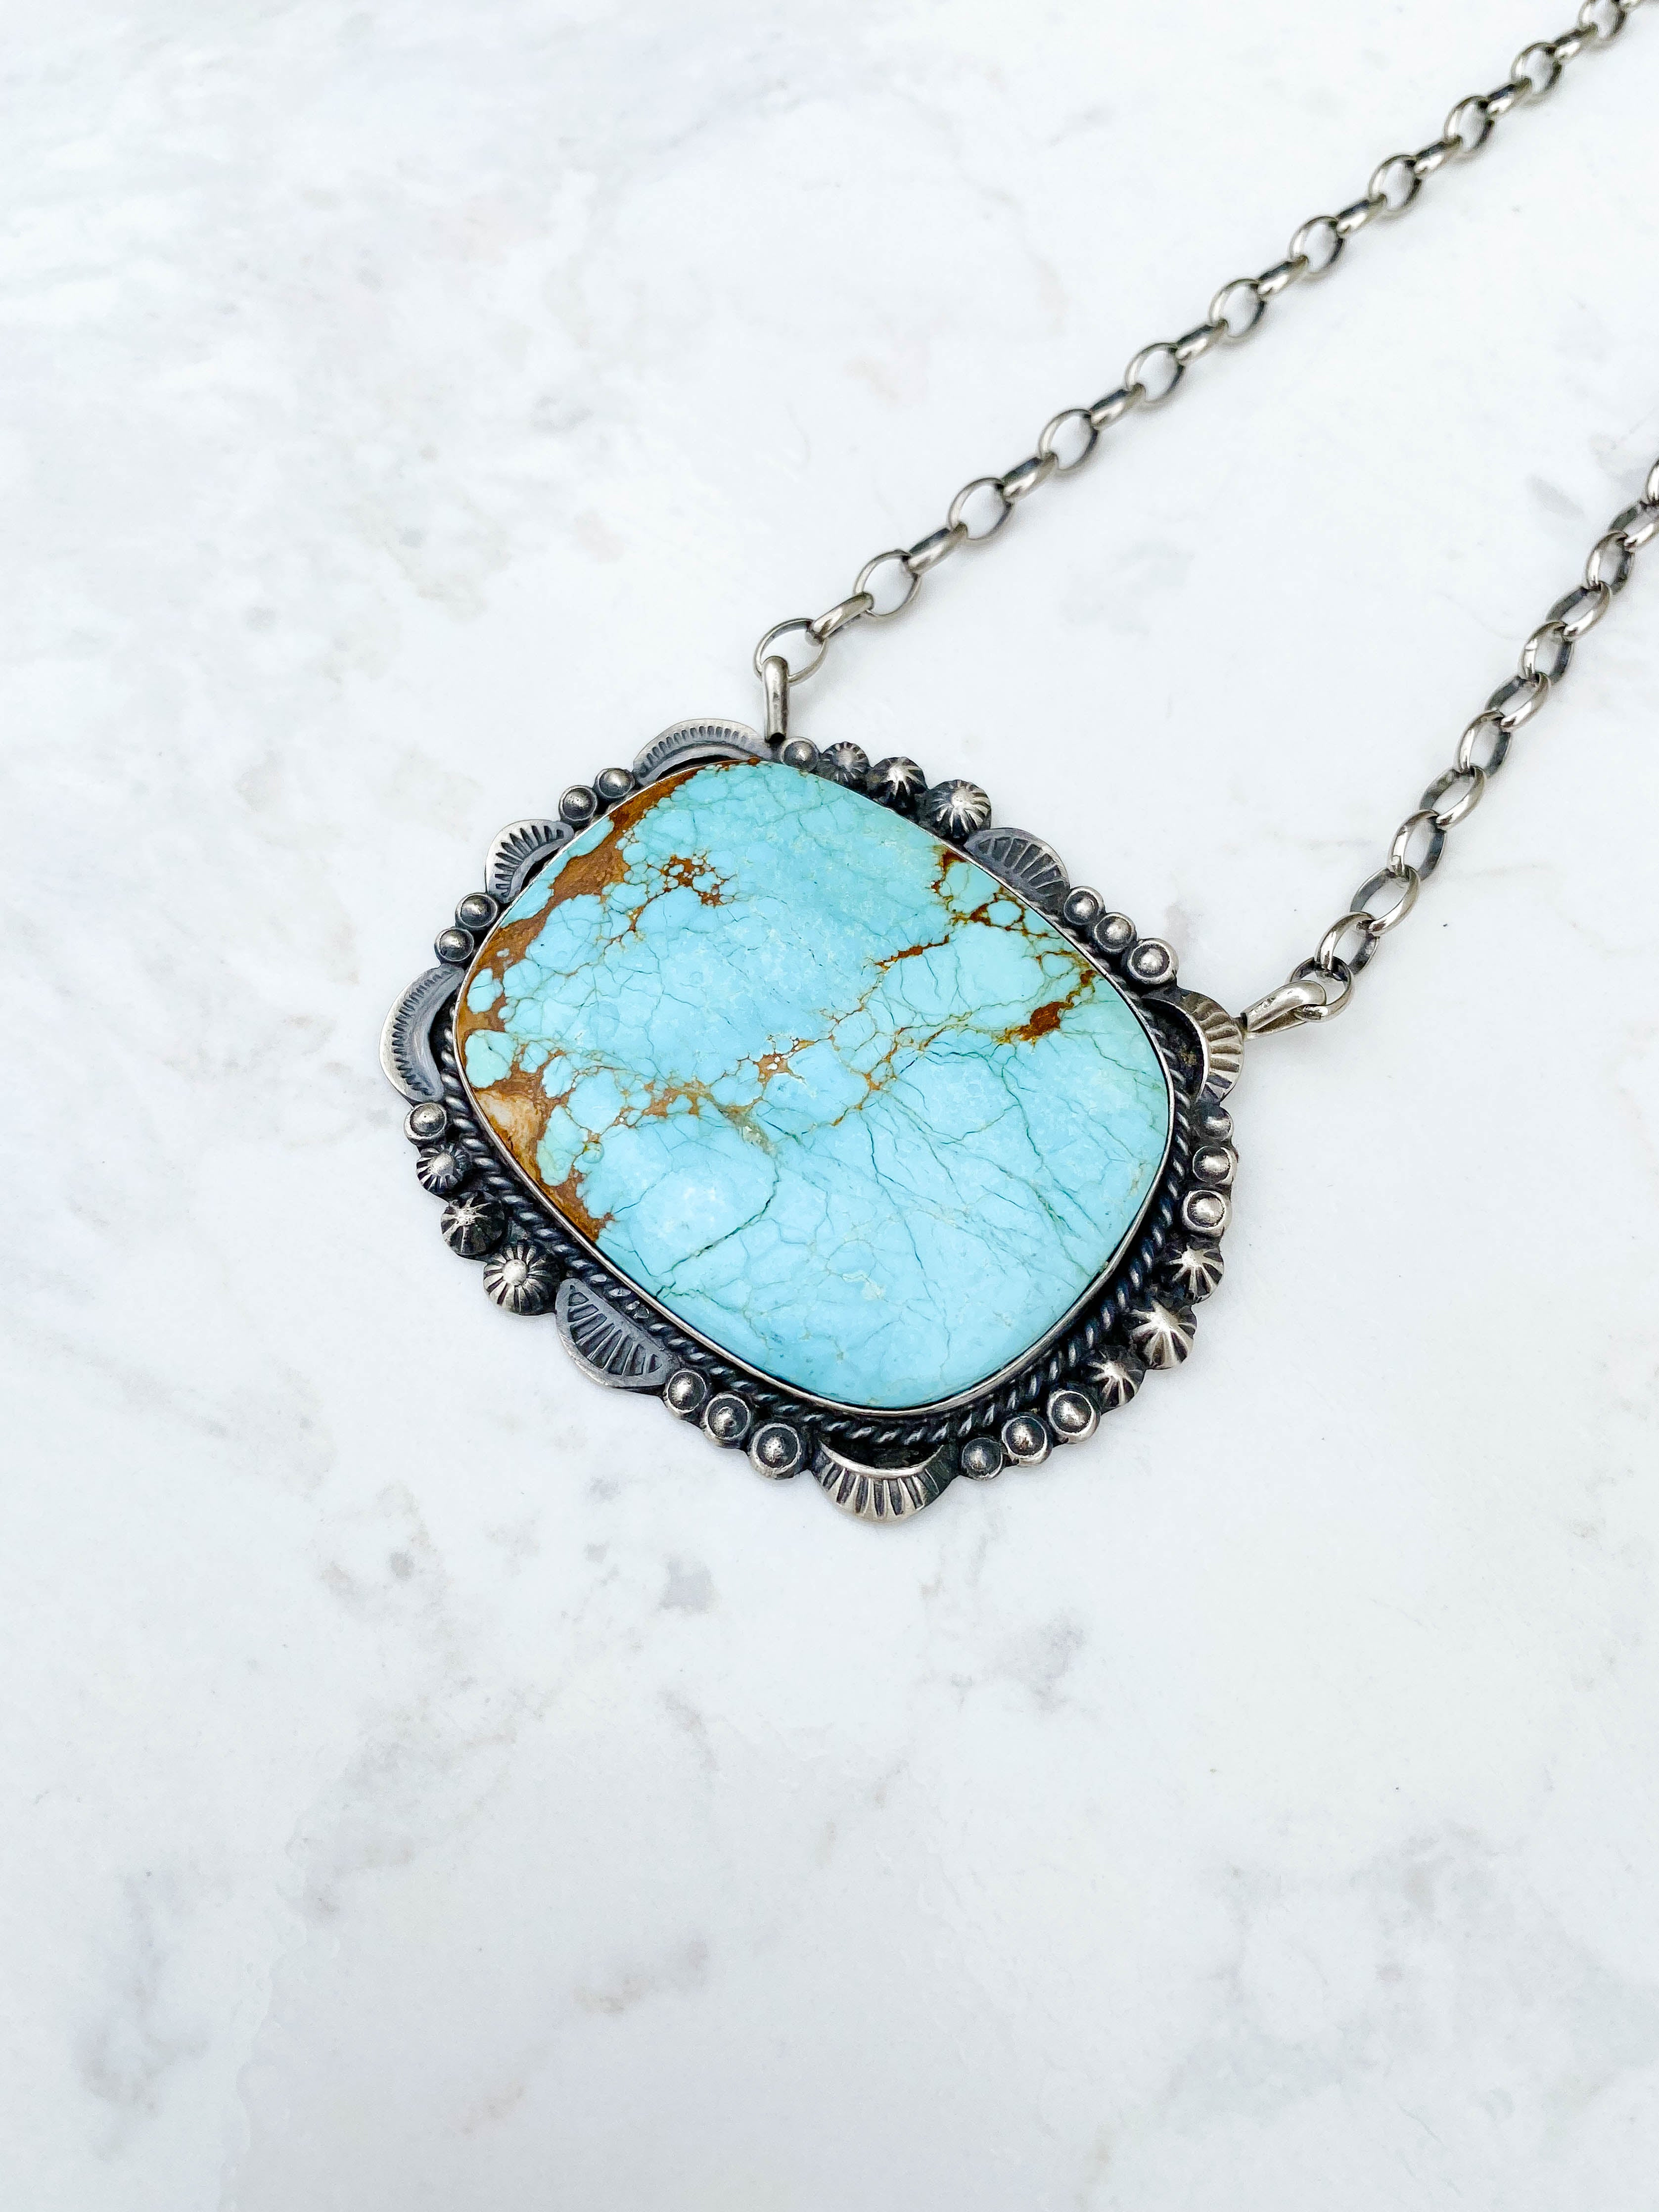 #8 Turquoise Statement Necklace